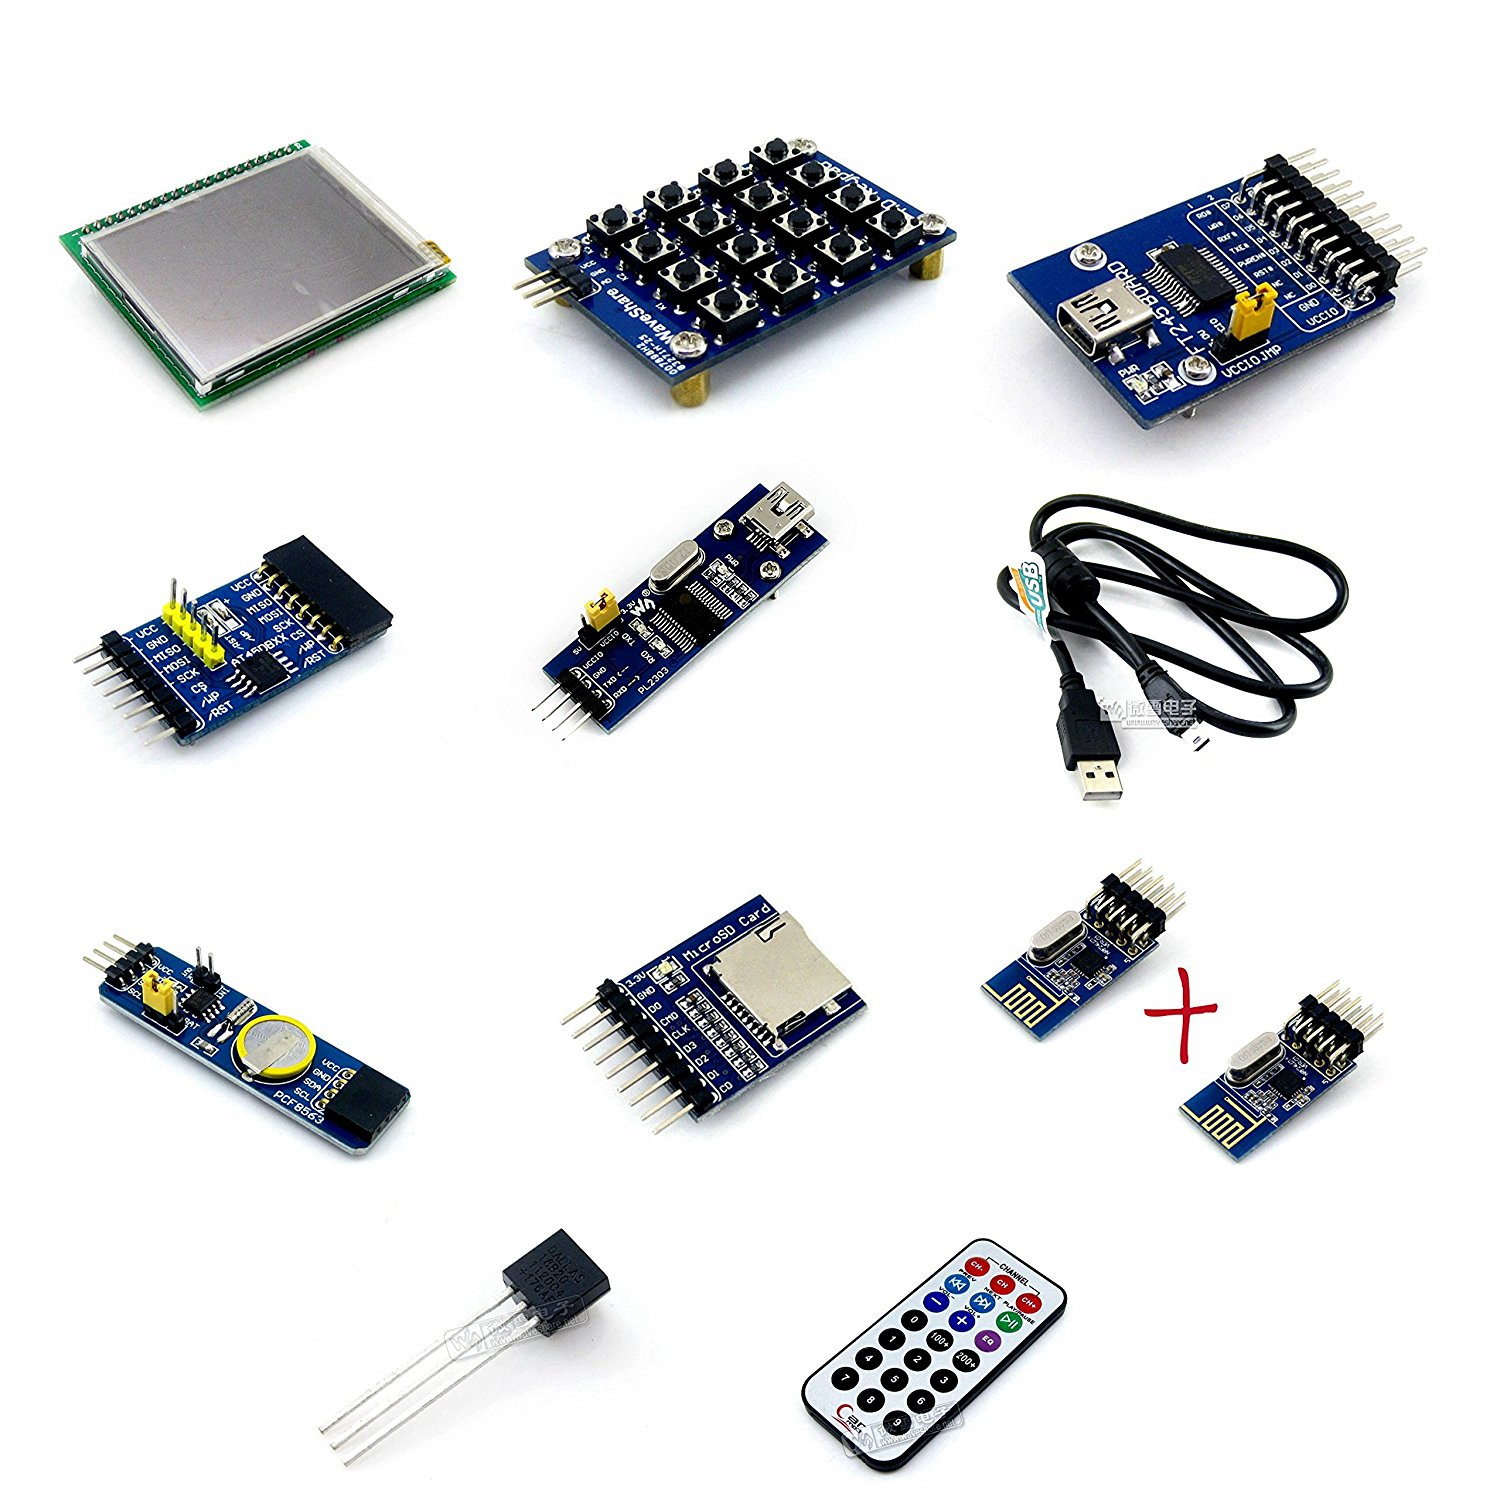 Cheap Pic Development Board Find Deals On Circuits Icsp In Circuit Serial Programming Based Pic16f84 Get Quotations Venel Electronic Component Open18f4520 Package A Designed For Pic18f Series